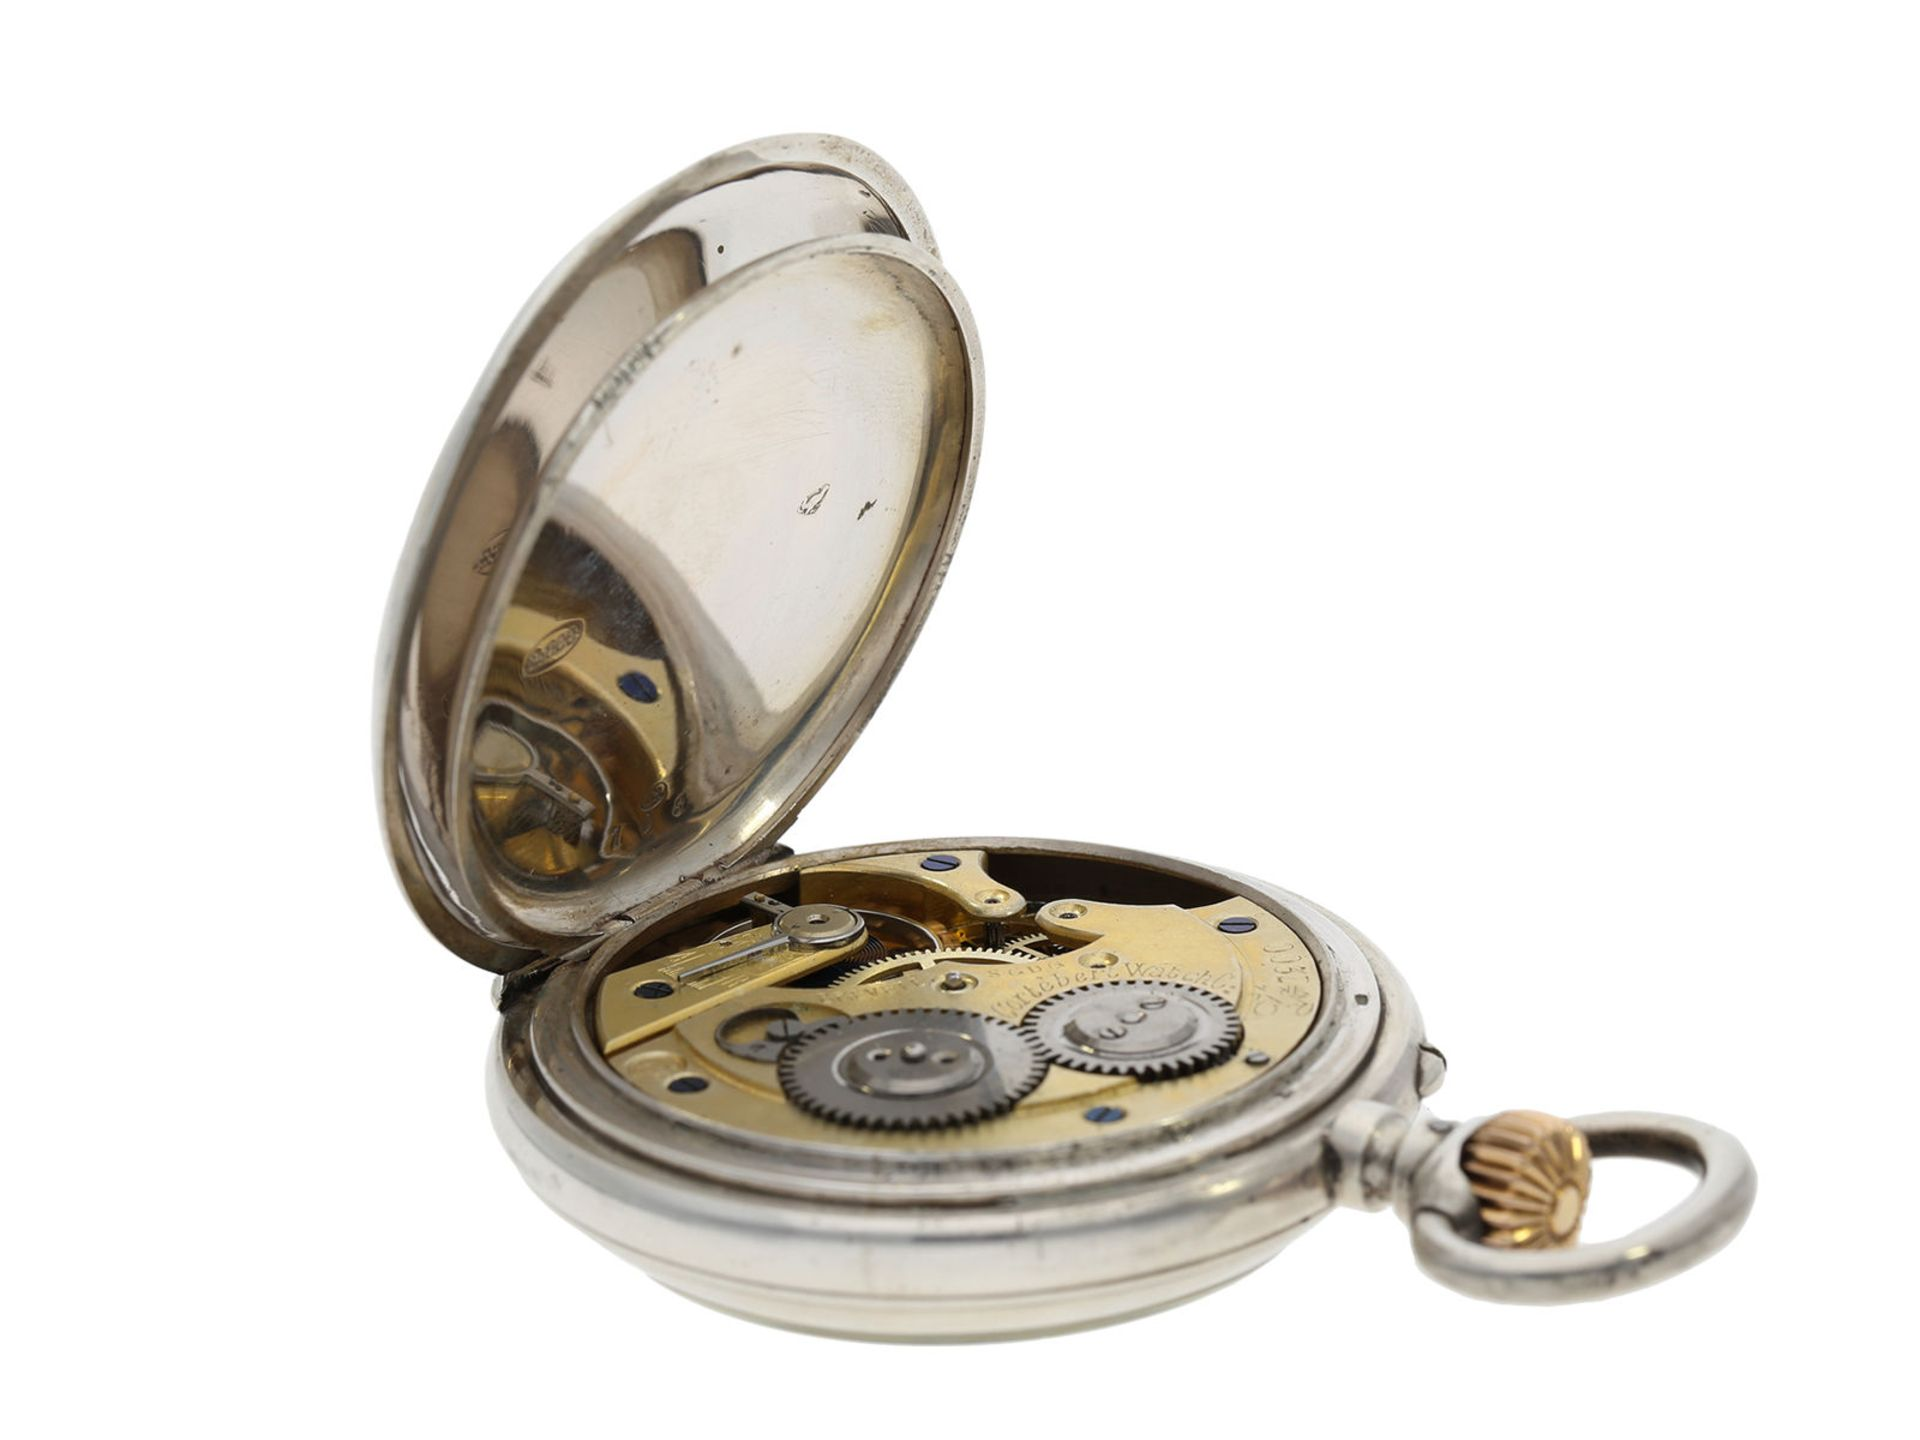 Pocket watch: rare digital pocket watch with jumping hour and jumping minute, Pallweber system, - Bild 3 aus 5